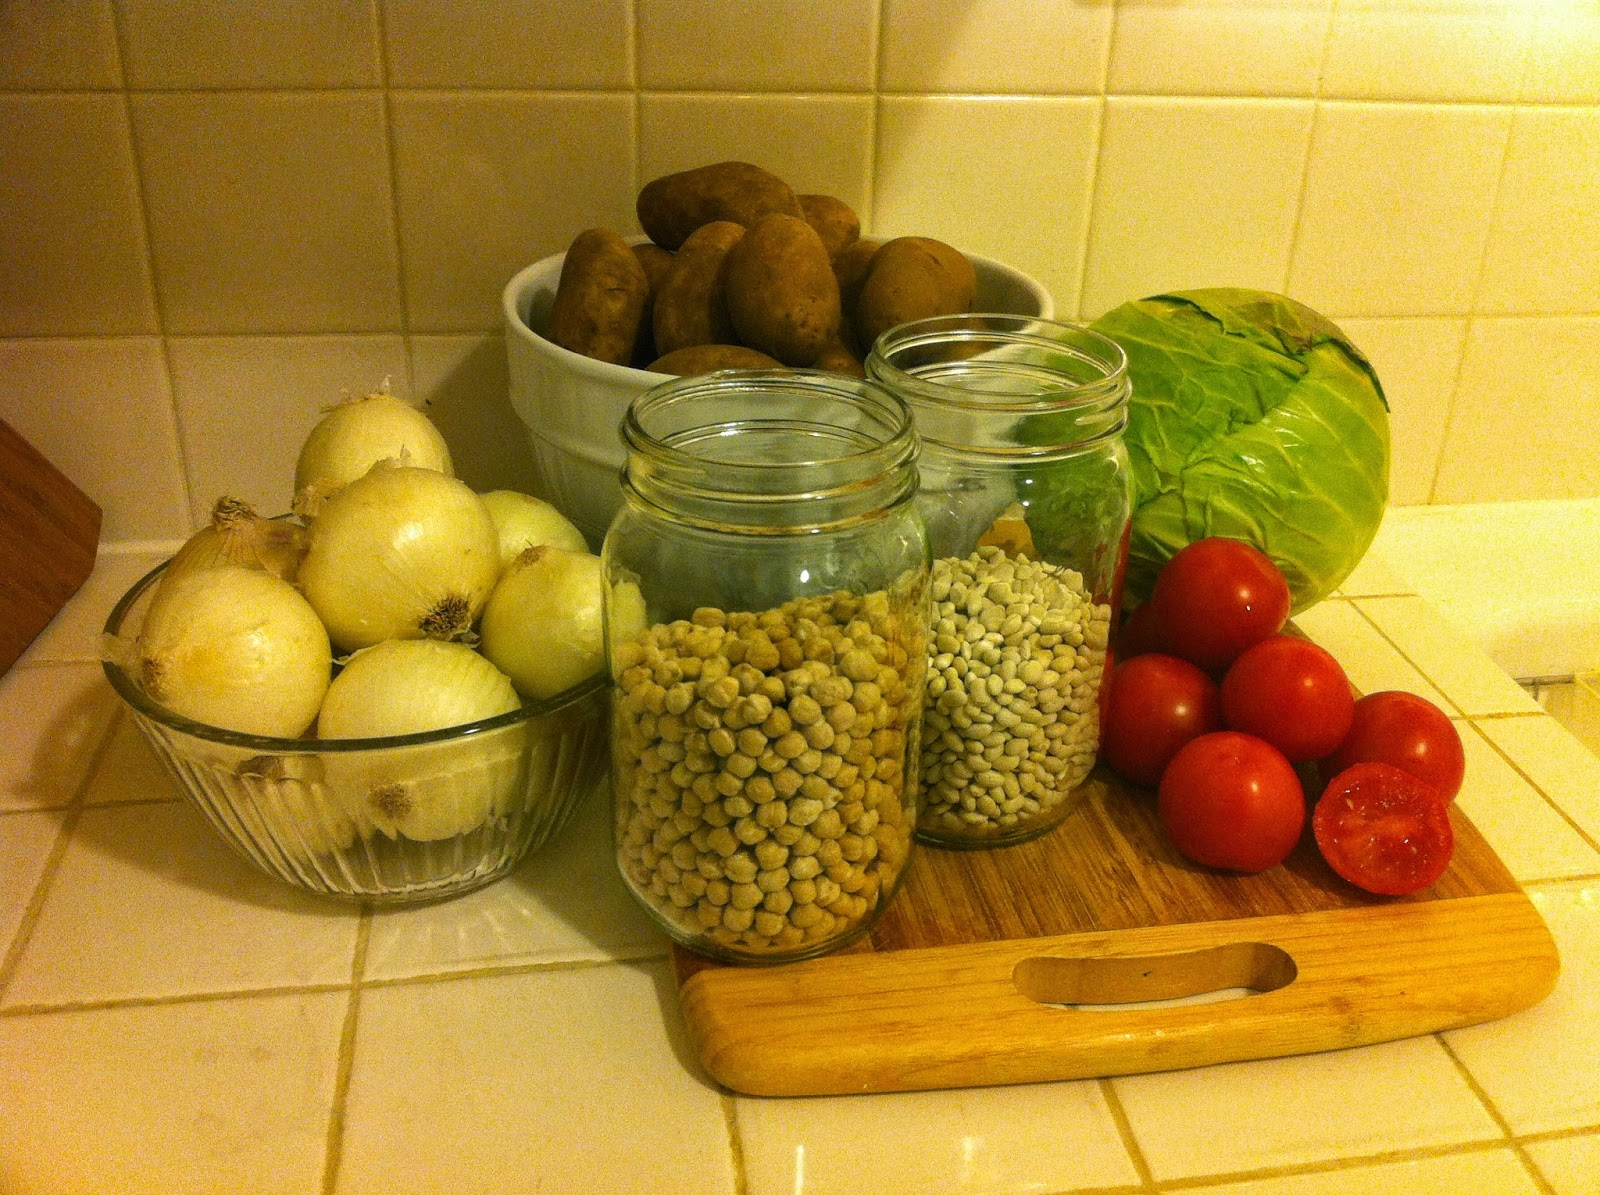 Image of potatoes, cabbage, beans, tomatoes, and onions that will be eaten over 5 days.